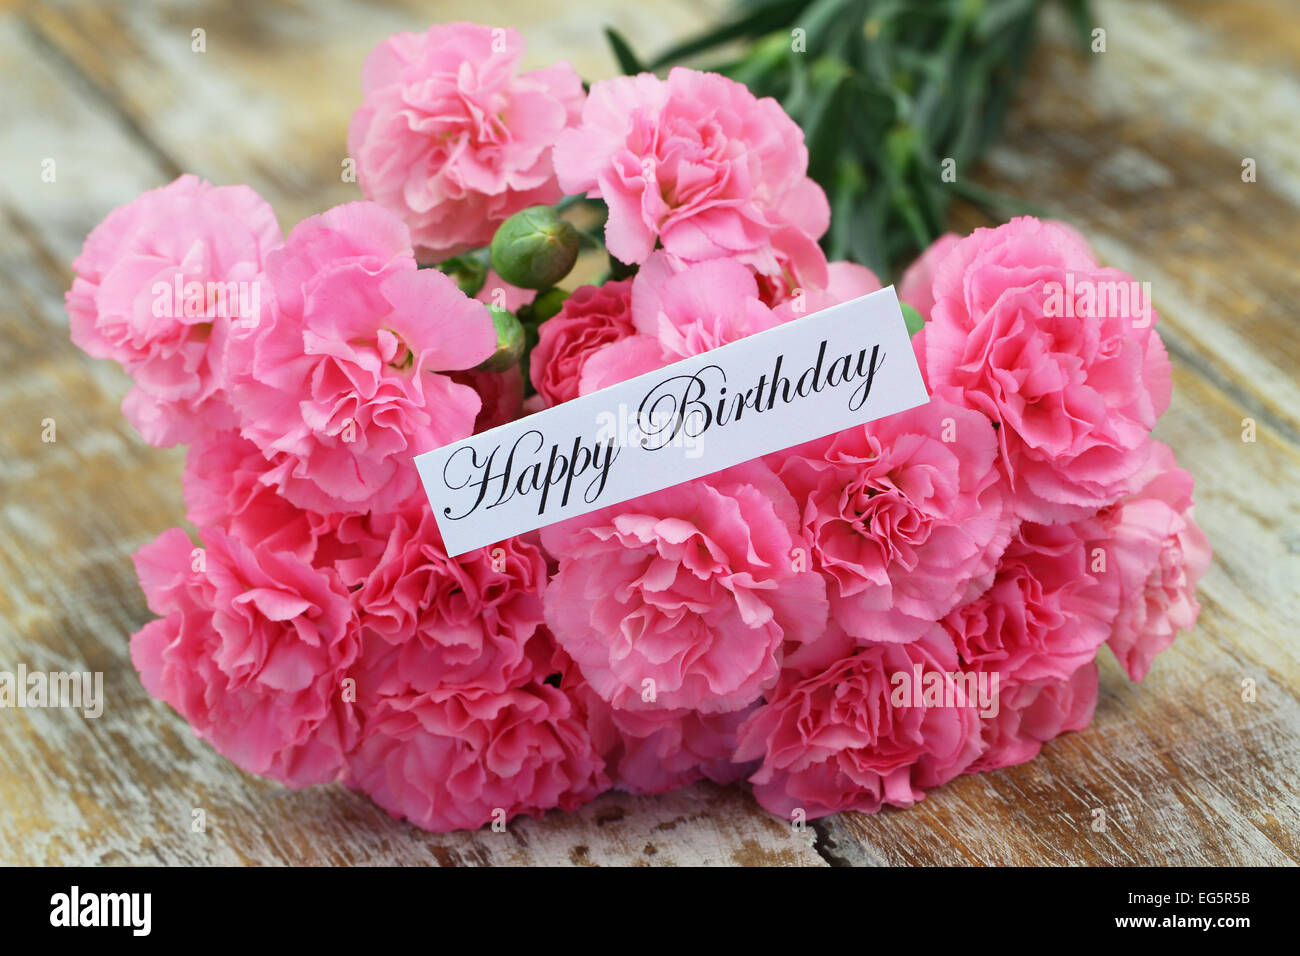 Happy birthday card pink carnation stock photos happy birthday happy birthday card with pink carnation flowers stock image izmirmasajfo